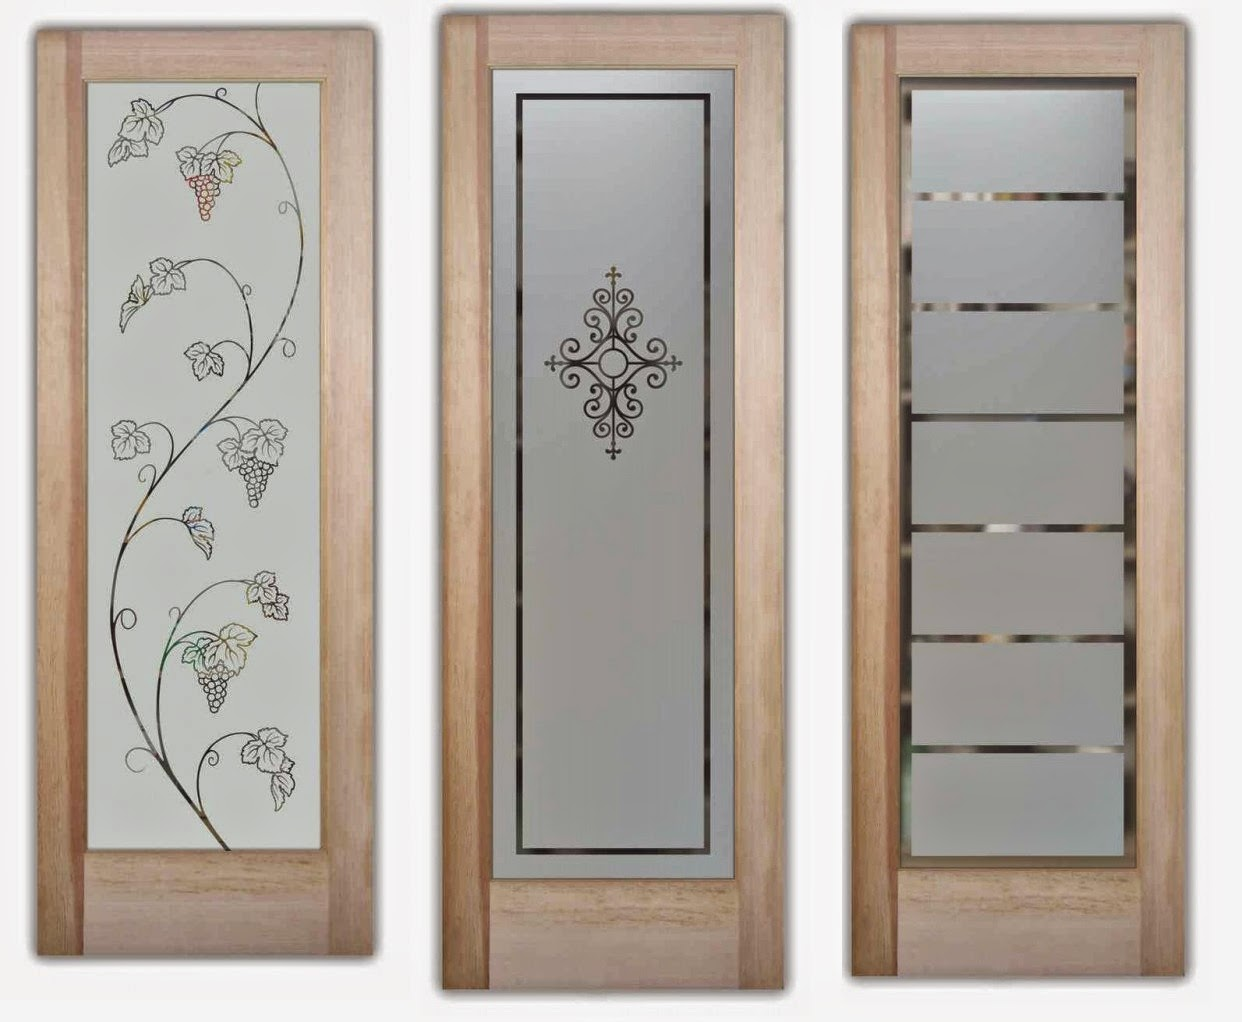 Incroyable Etched Glass Doors For Interior Beauty